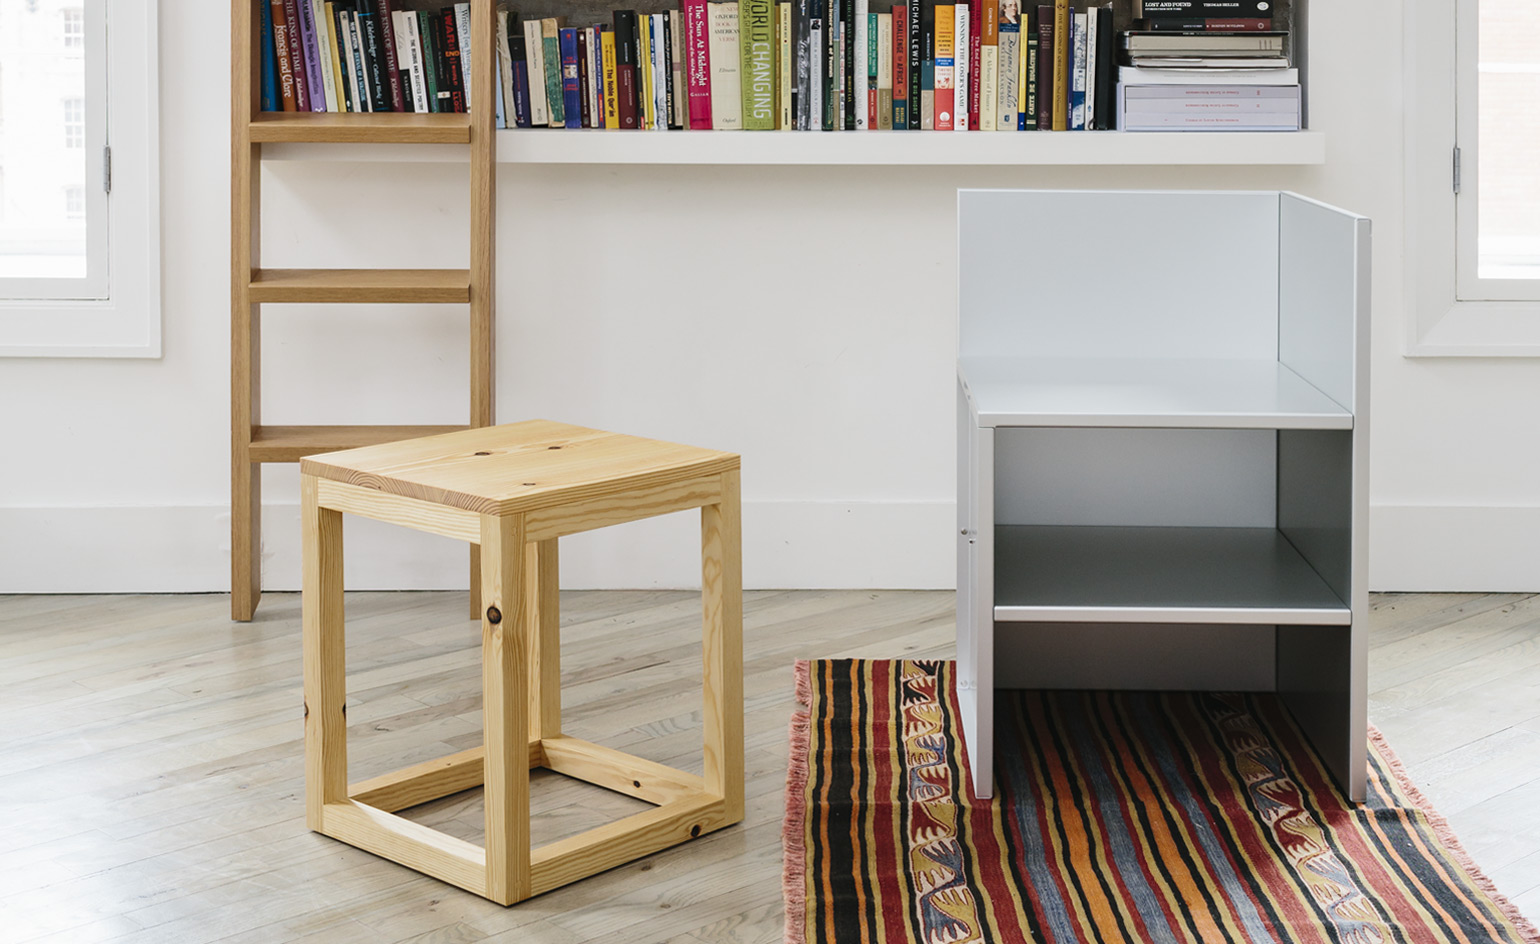 Two Iconic Donald Judd Pieces Of Furniture Go On Sale